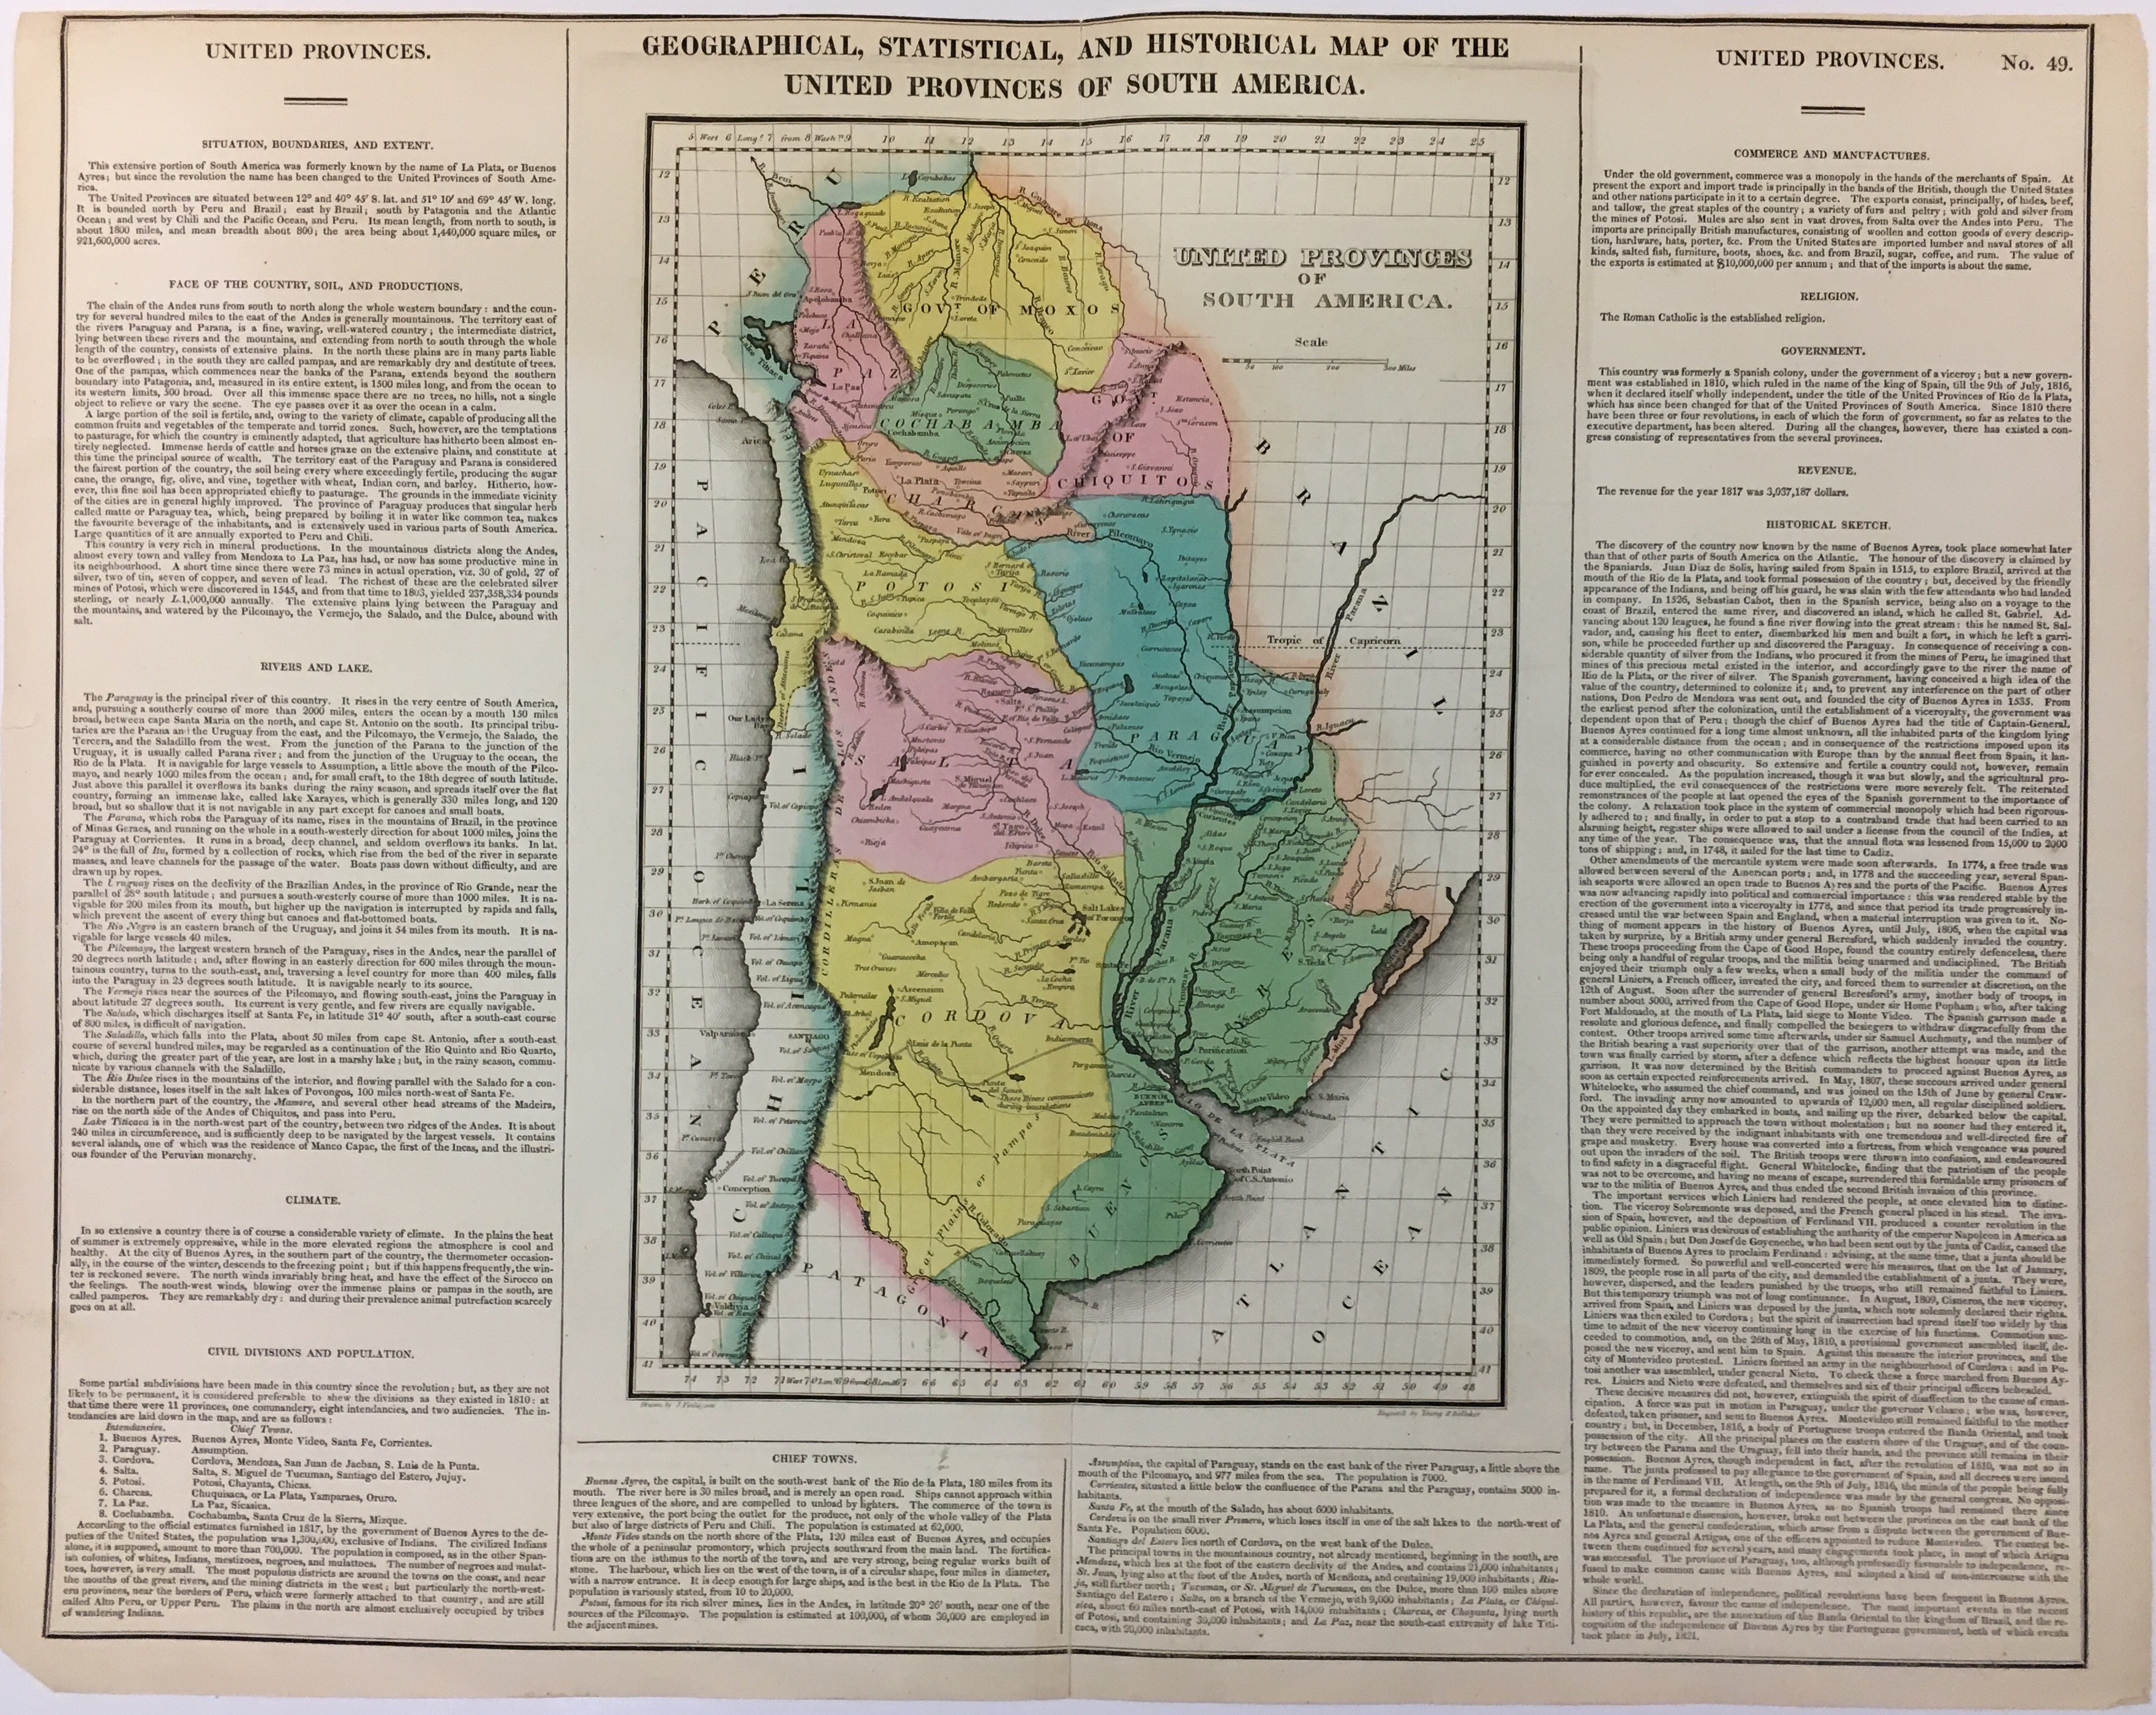 Geographical, Historical, and Statistical Map of the United Provinces of South America. CAREY, LEA